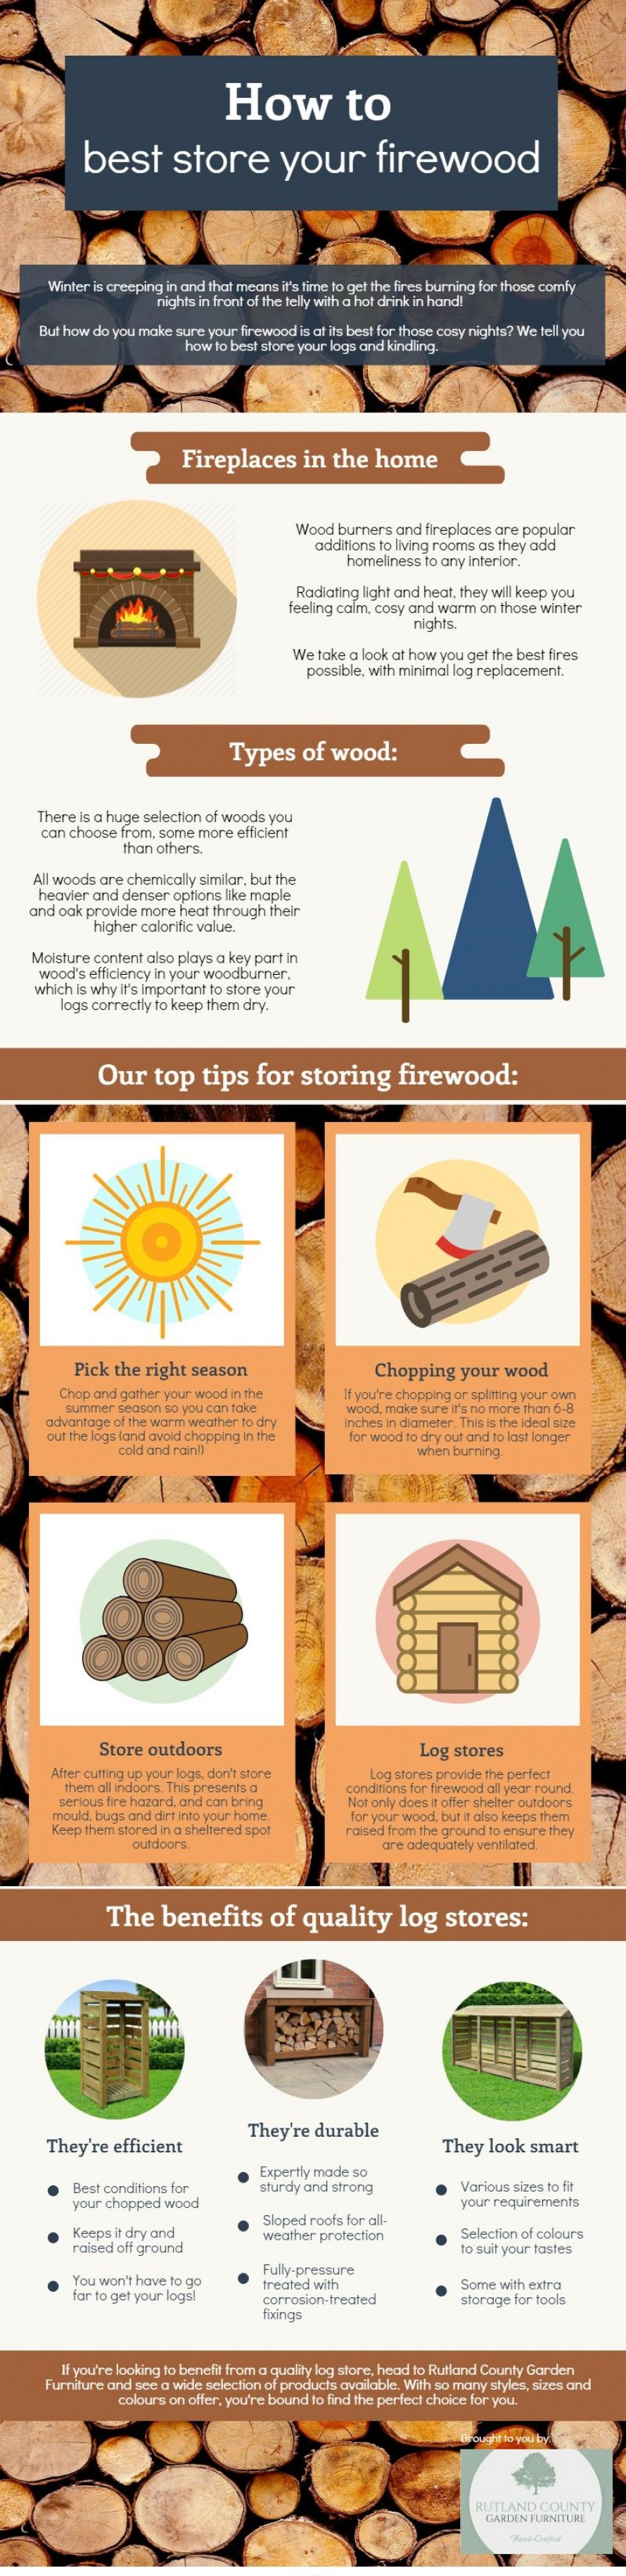 How_to_best_store_your_firewood